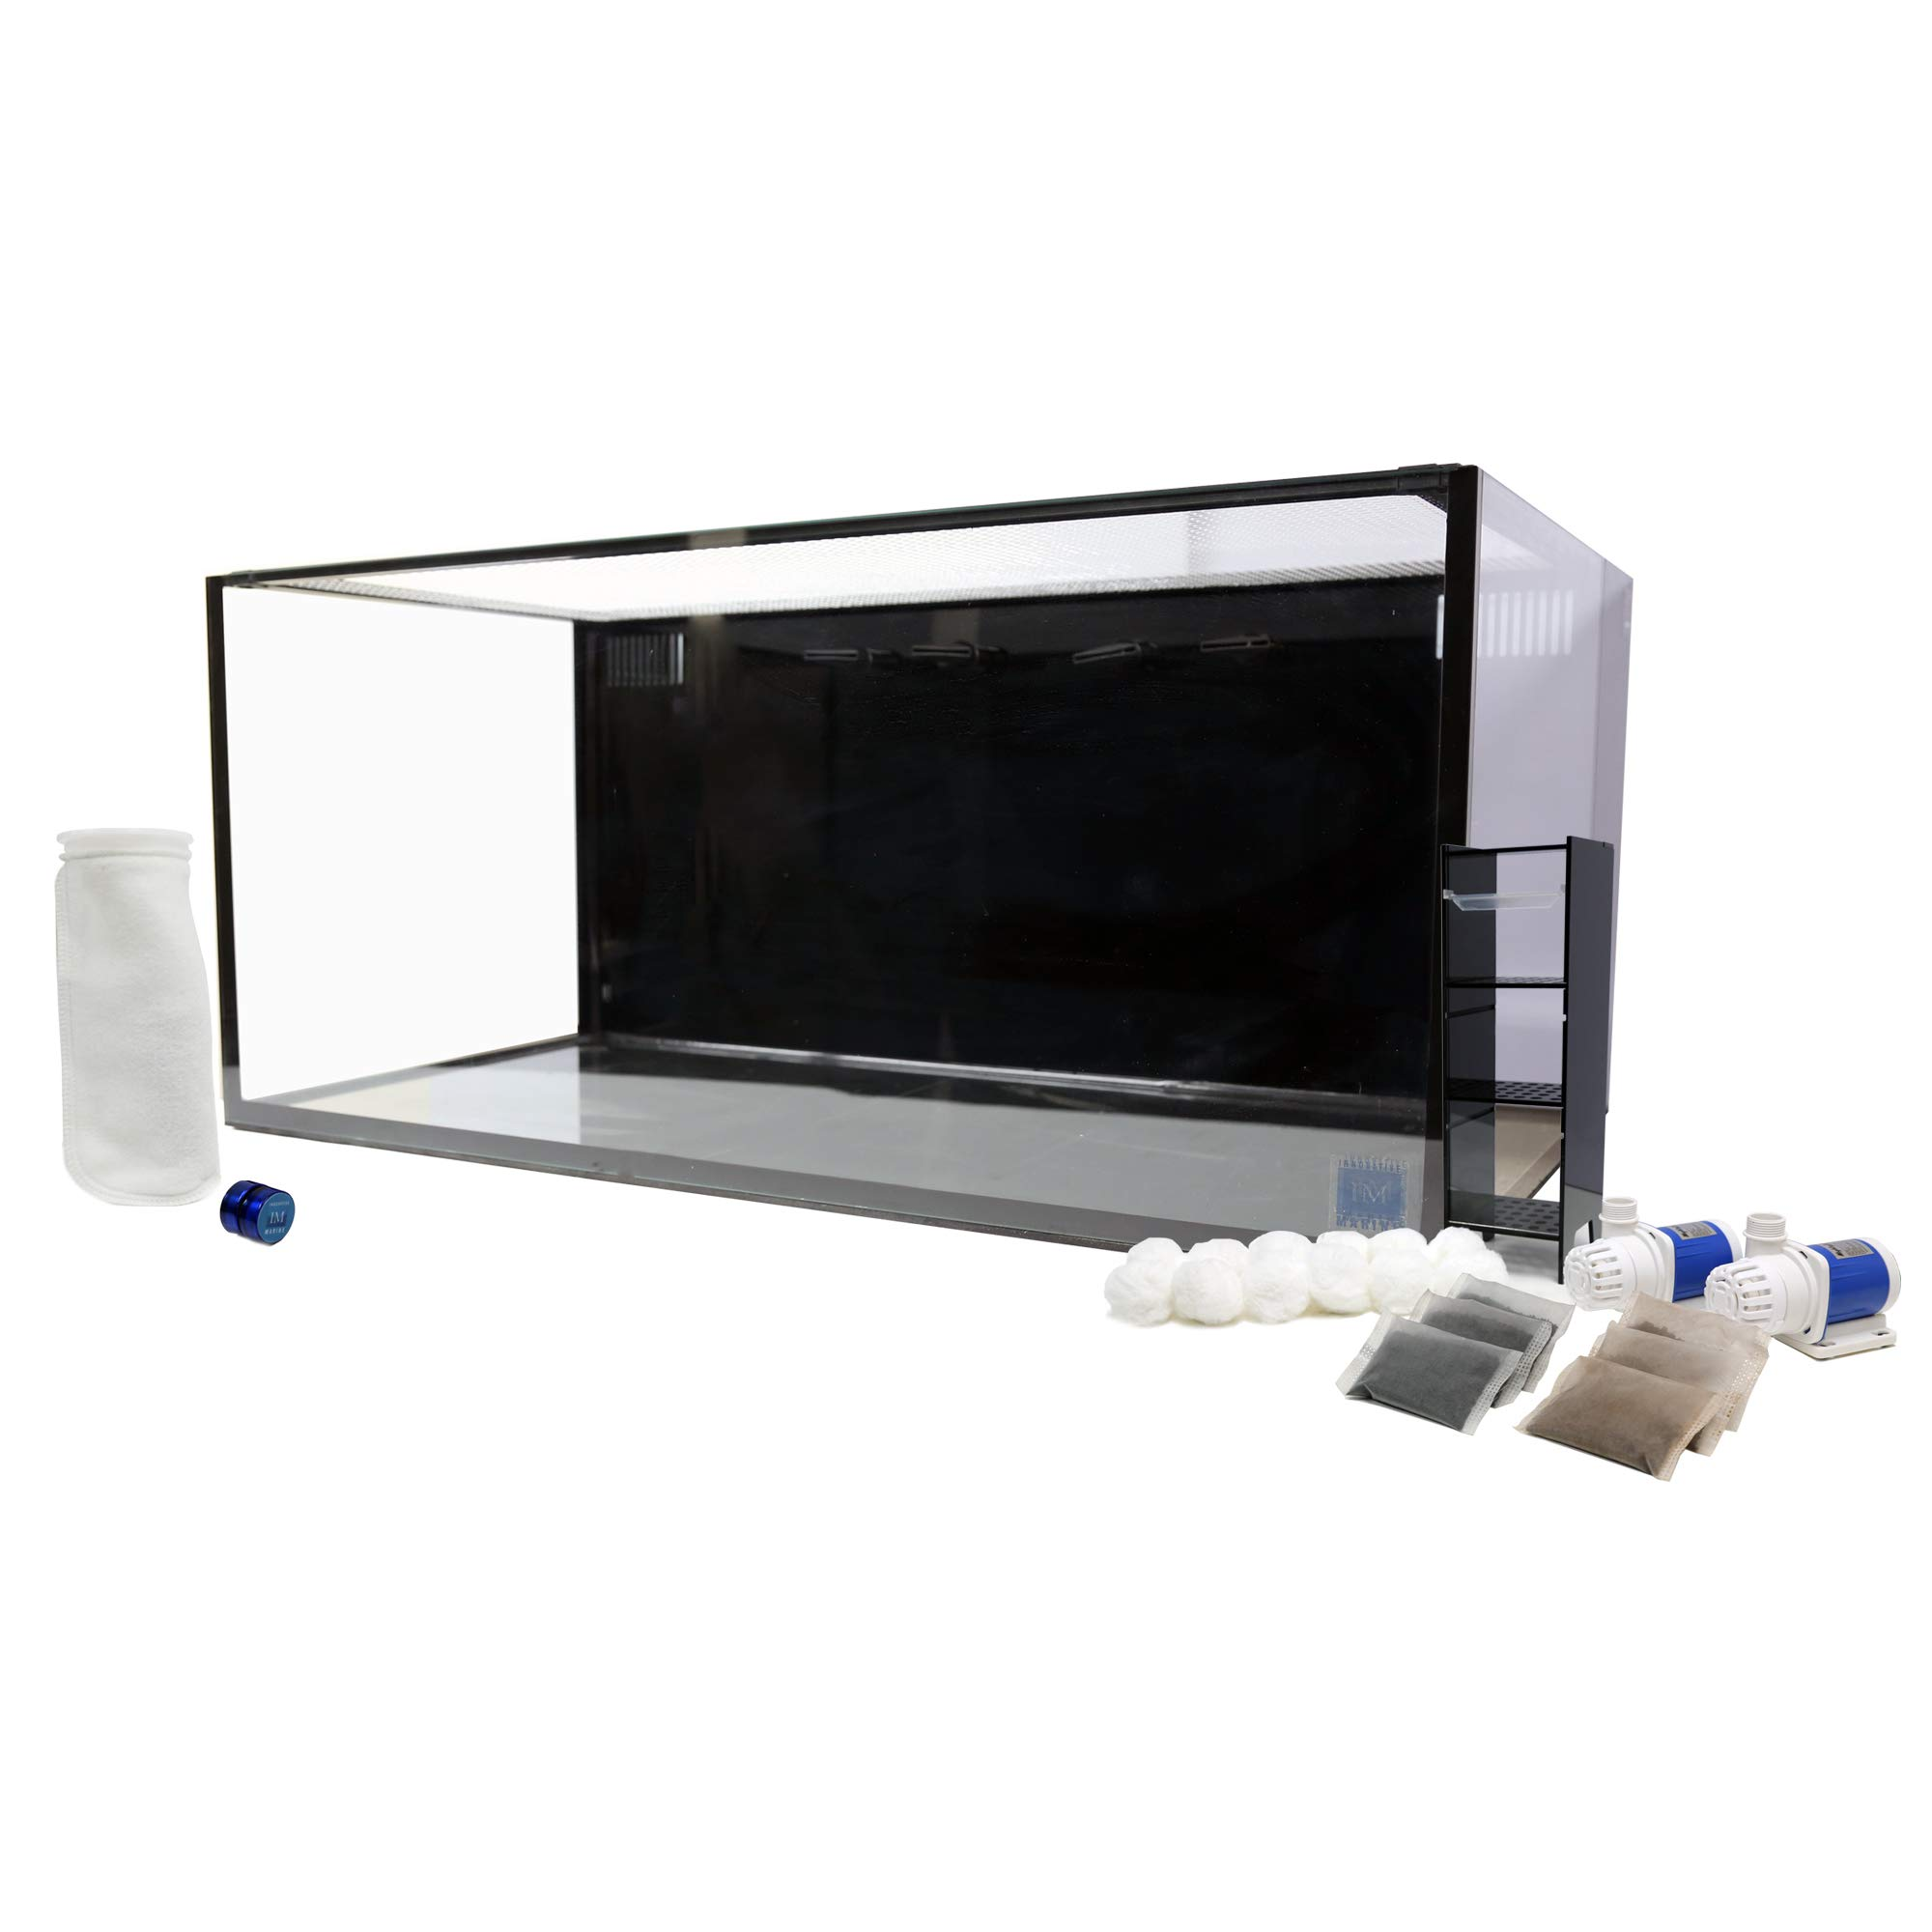 Innovative Marine Nuvo SR PRO 60 Gallon AIO (All-in-one) Aquarium with 2 x Mighty Jet DC Return Pump, Custom Caddy (Media Included), Filter Sock, Leveling Mat and Assembled Mesh Screen, MicroMag by Innovative Marine